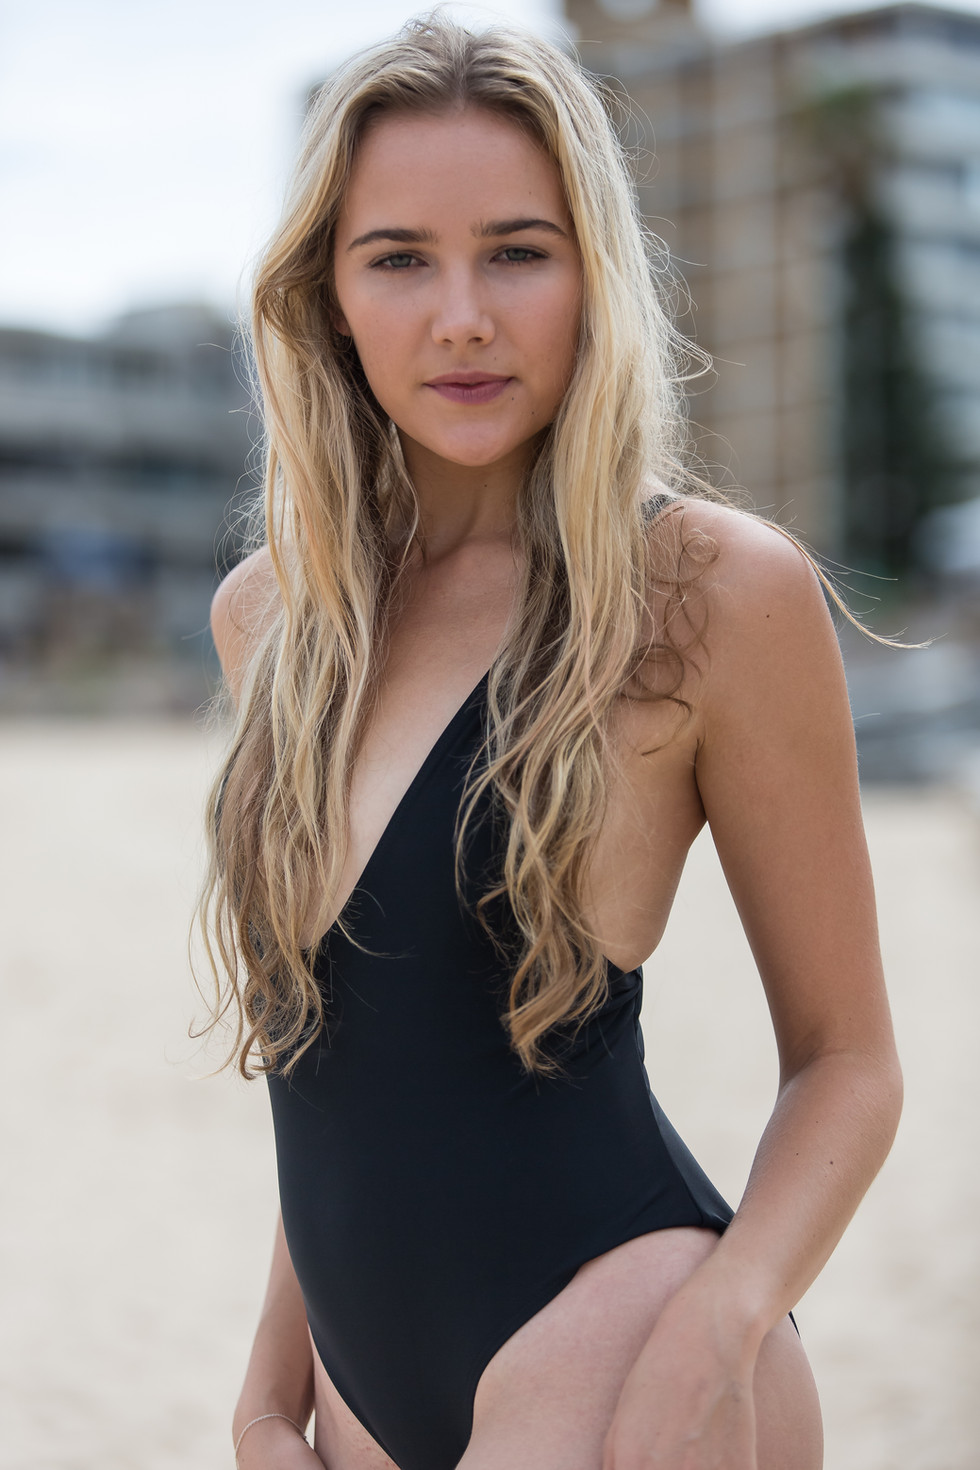 Amy__by_CoogeePhotography-781453.jpg